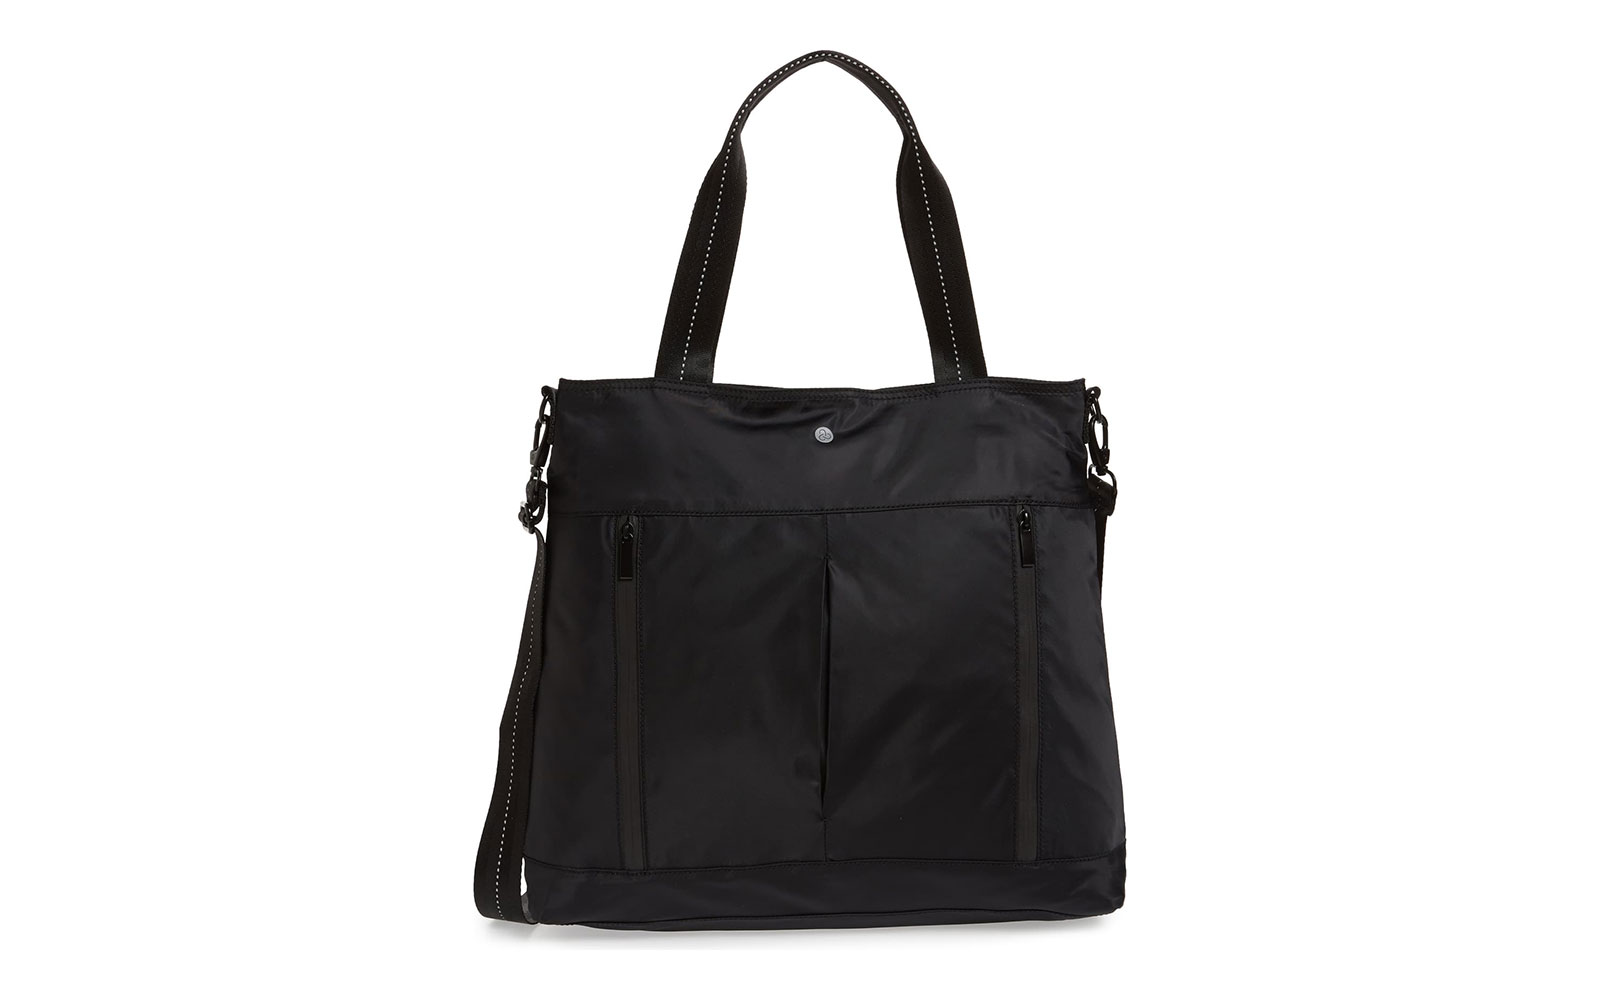 Zella Reflective Nylon Tote Bag